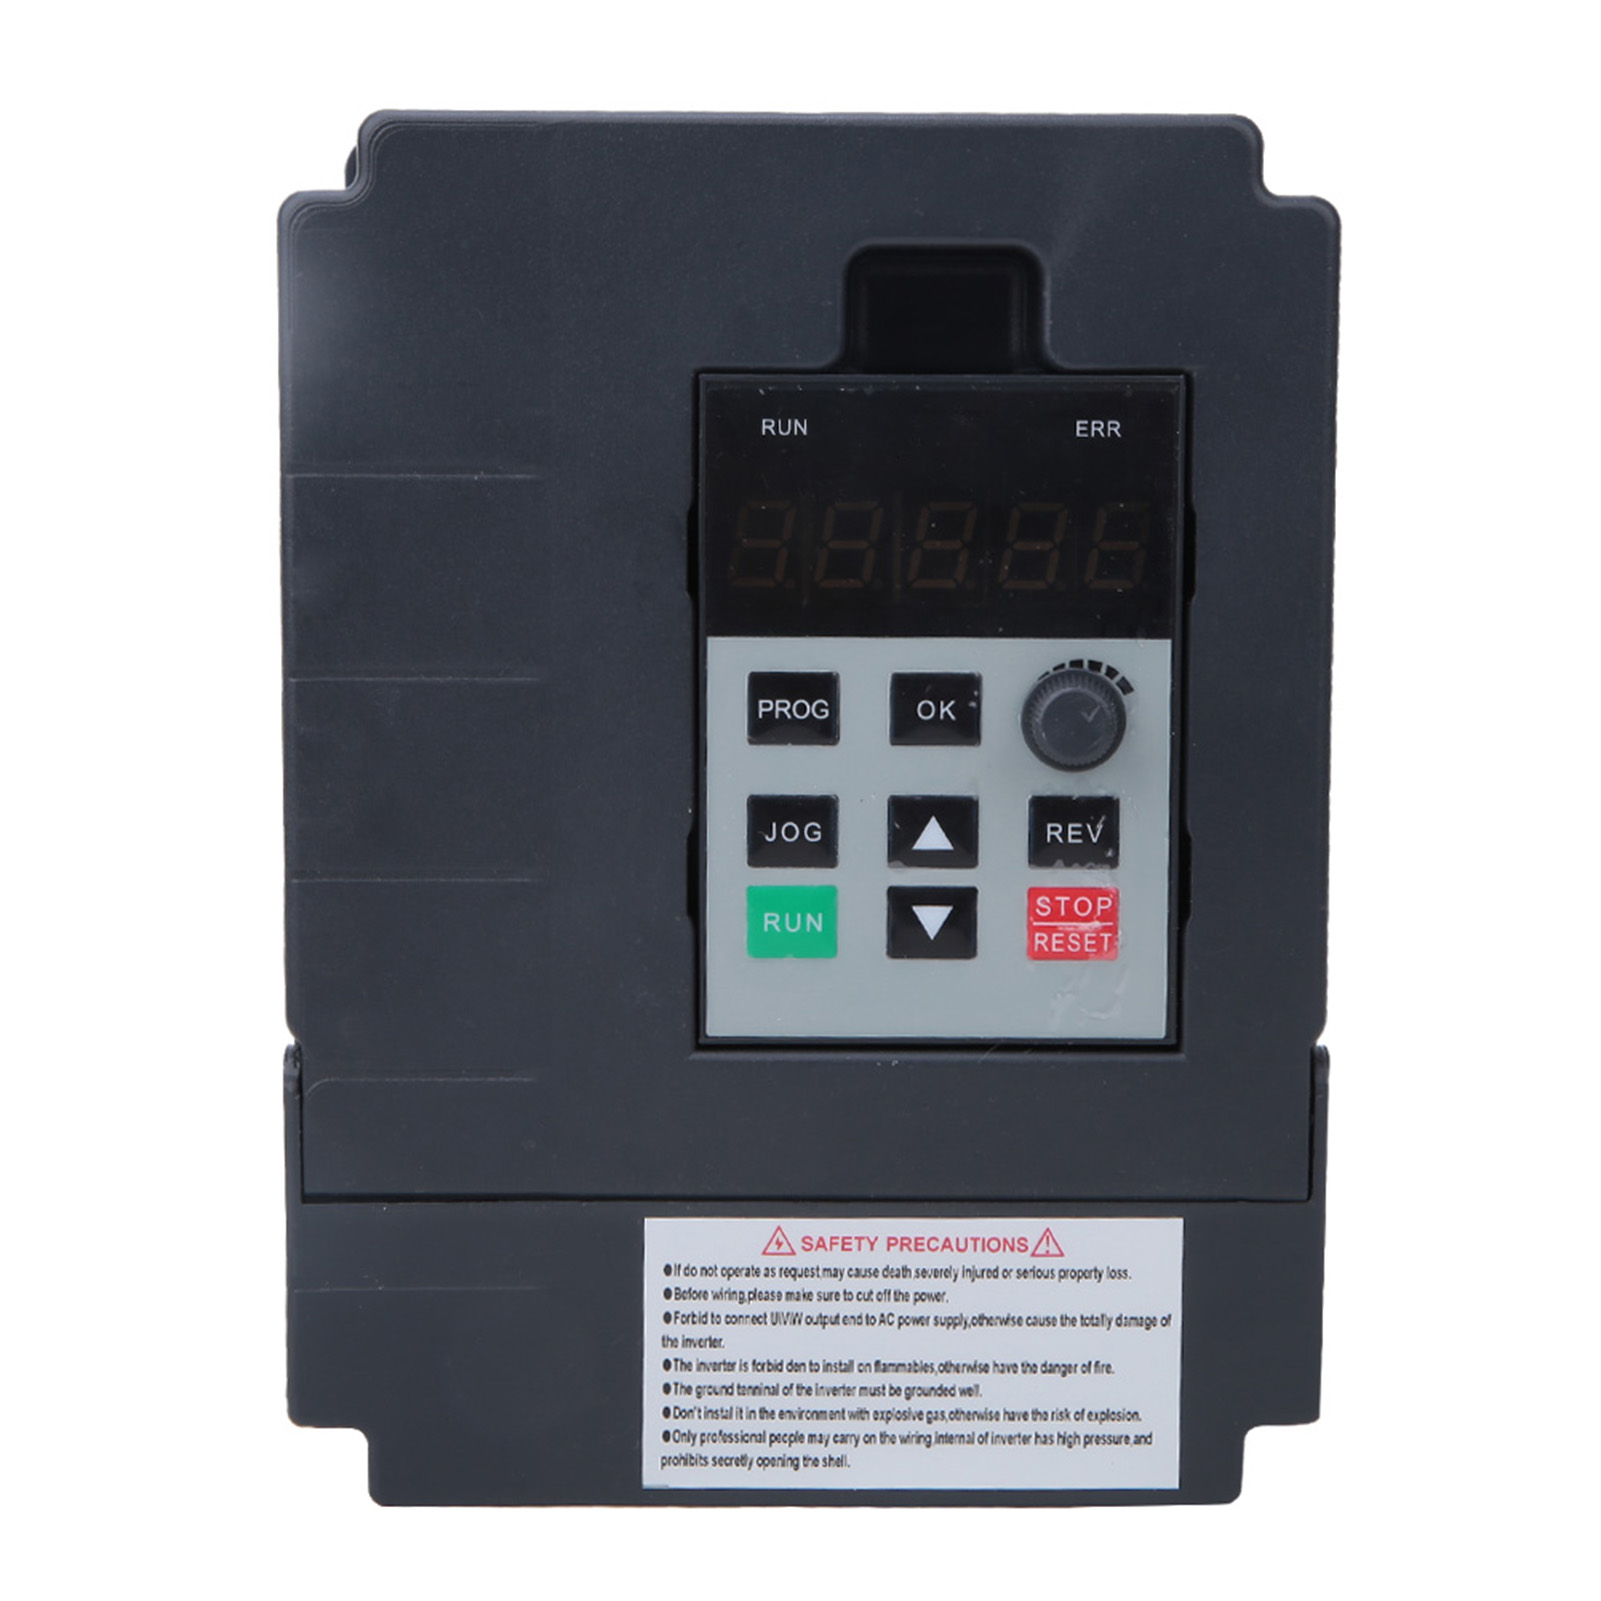 2-2KW-220V-Single-phase-inverter-input-VFD-3-Phase-Output-Frequency-Converter thumbnail 19